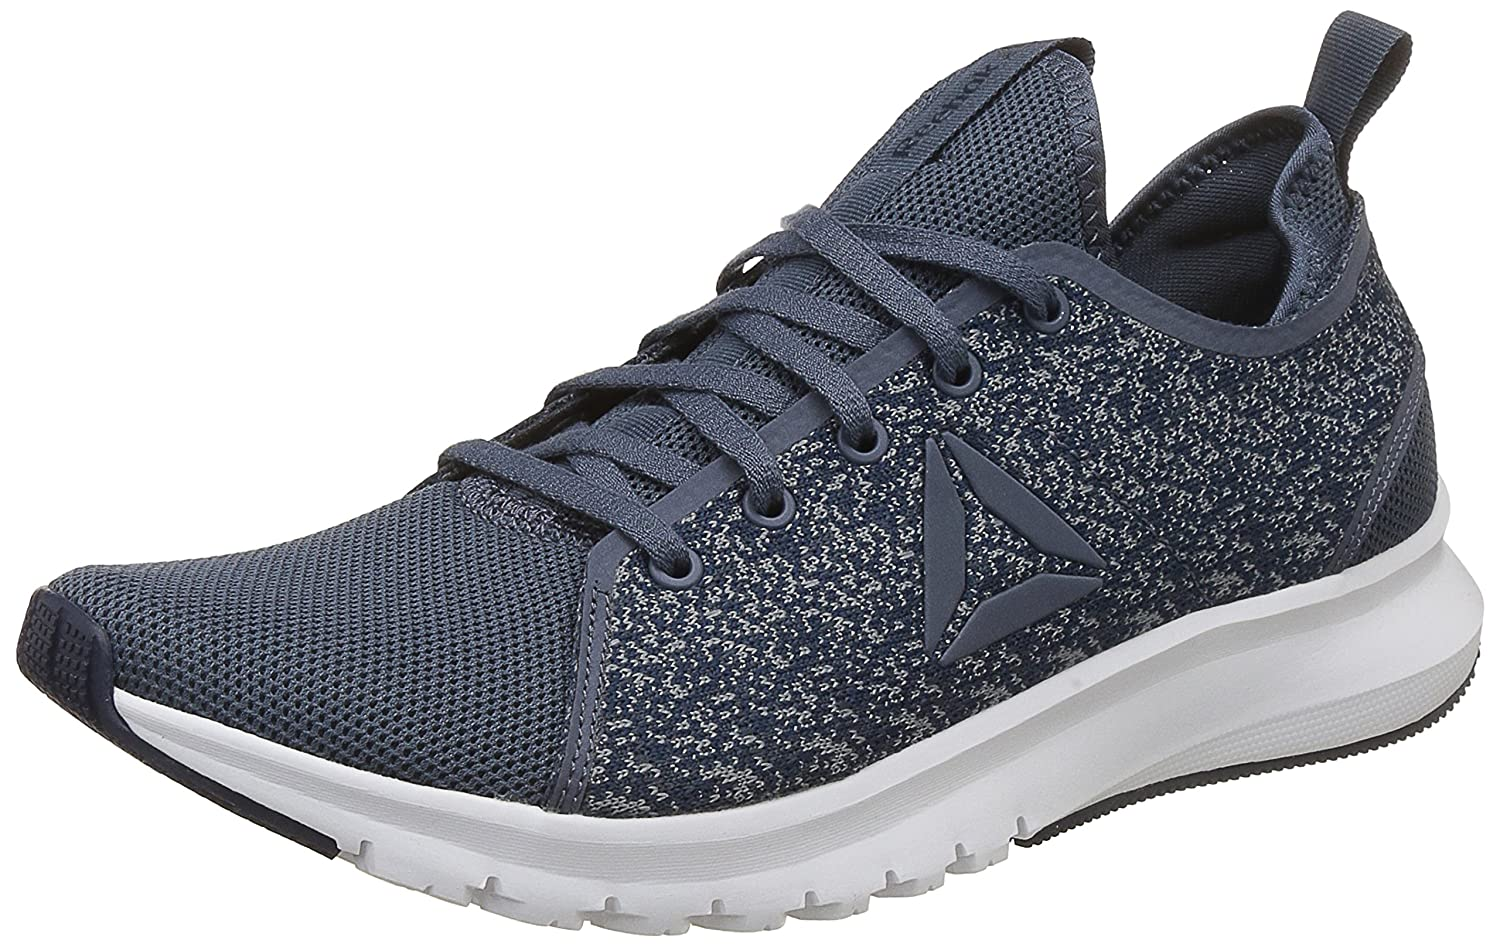 Reebok Men s Plus Lite Ti Running Shoes  Buy Online at Low Prices in India  - Amazon.in 10fe9ffd0